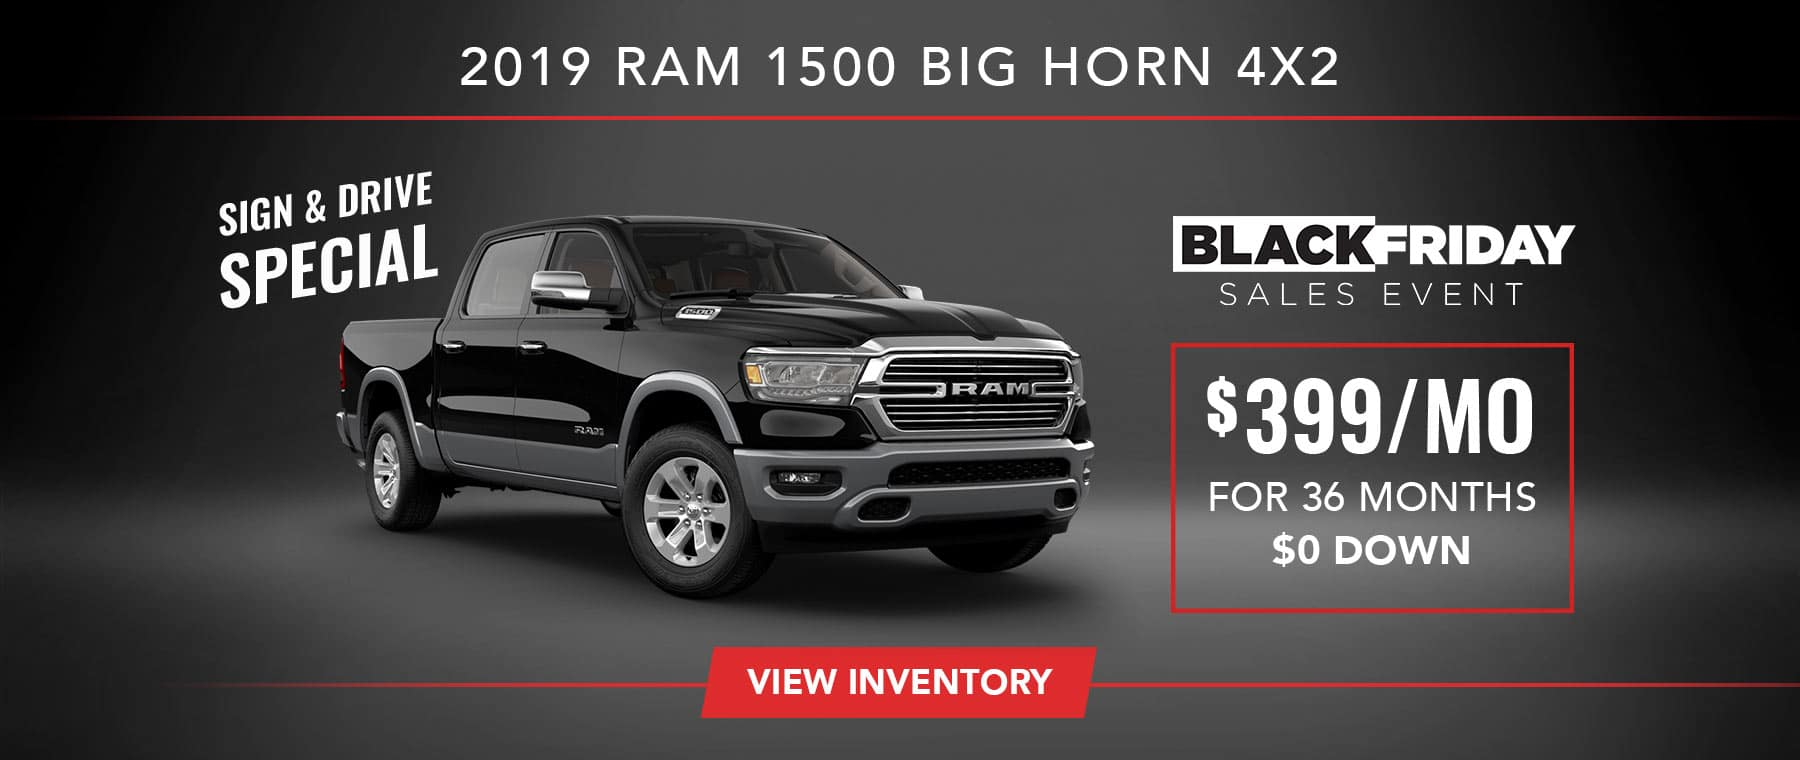 2019 RAM 1500 Big Horn Sign and Drive Special